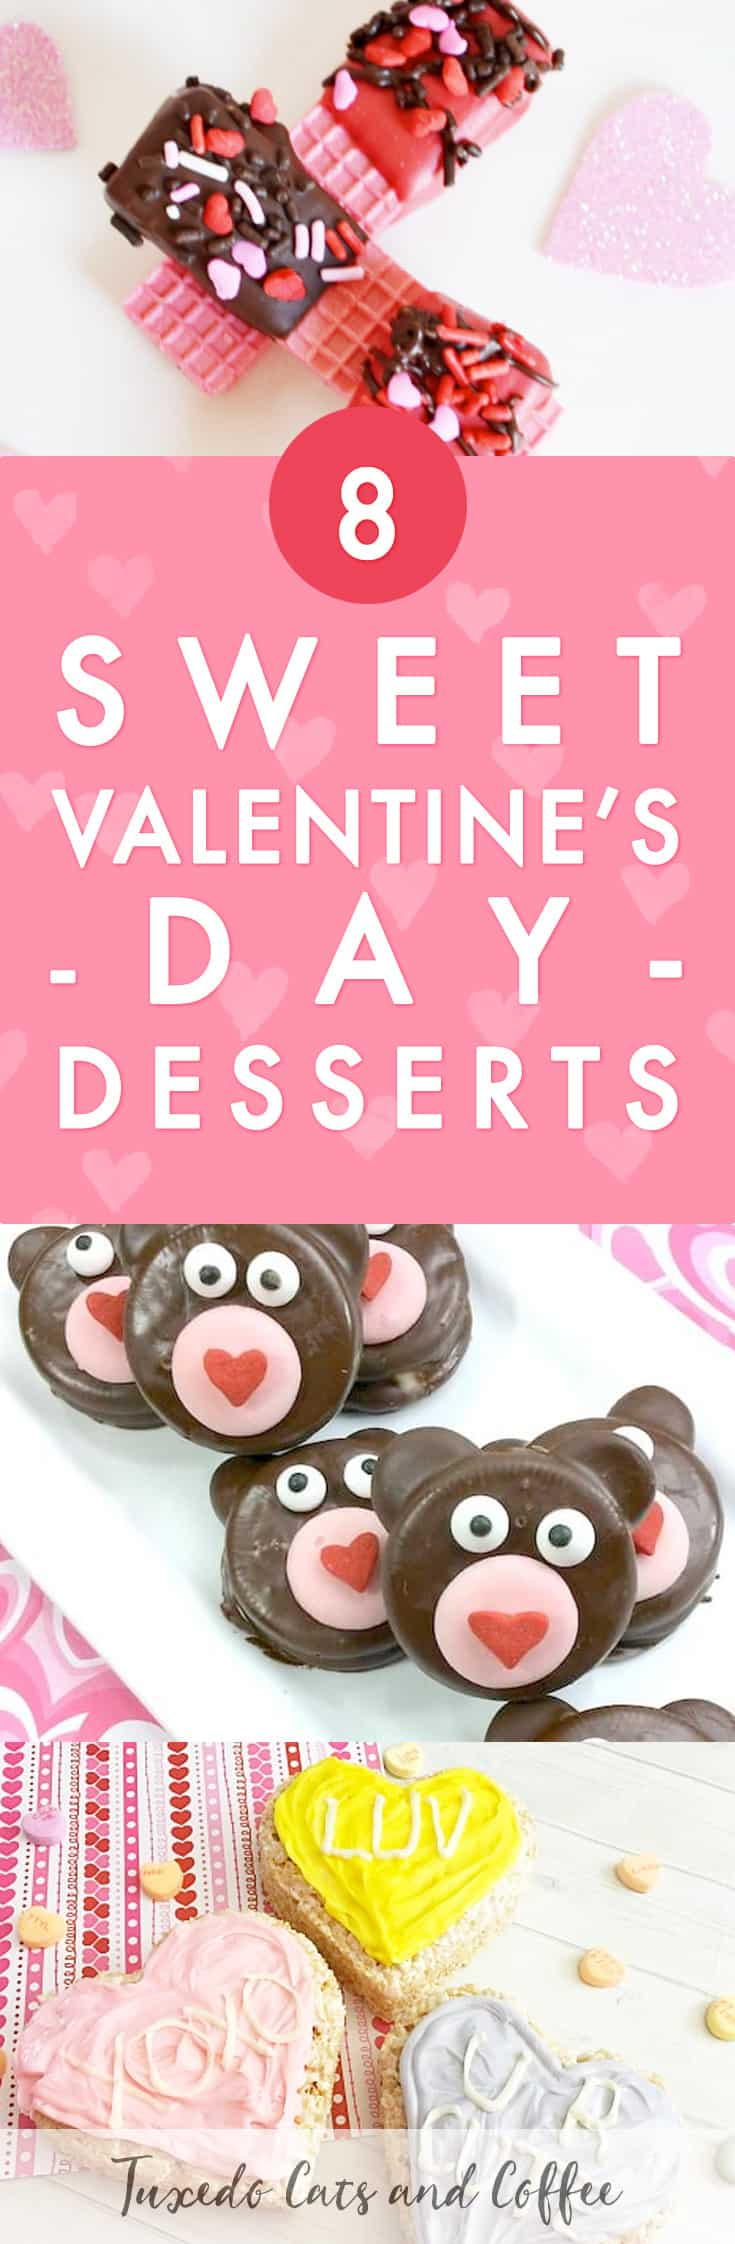 Love is in the air, and these 8 sweet Valentine's Day desserts and homemade treats will set a sweet and romantic tone for your loved ones this year.  Try making some of these Valentine's Day treats for a homemade Valentine's gift.